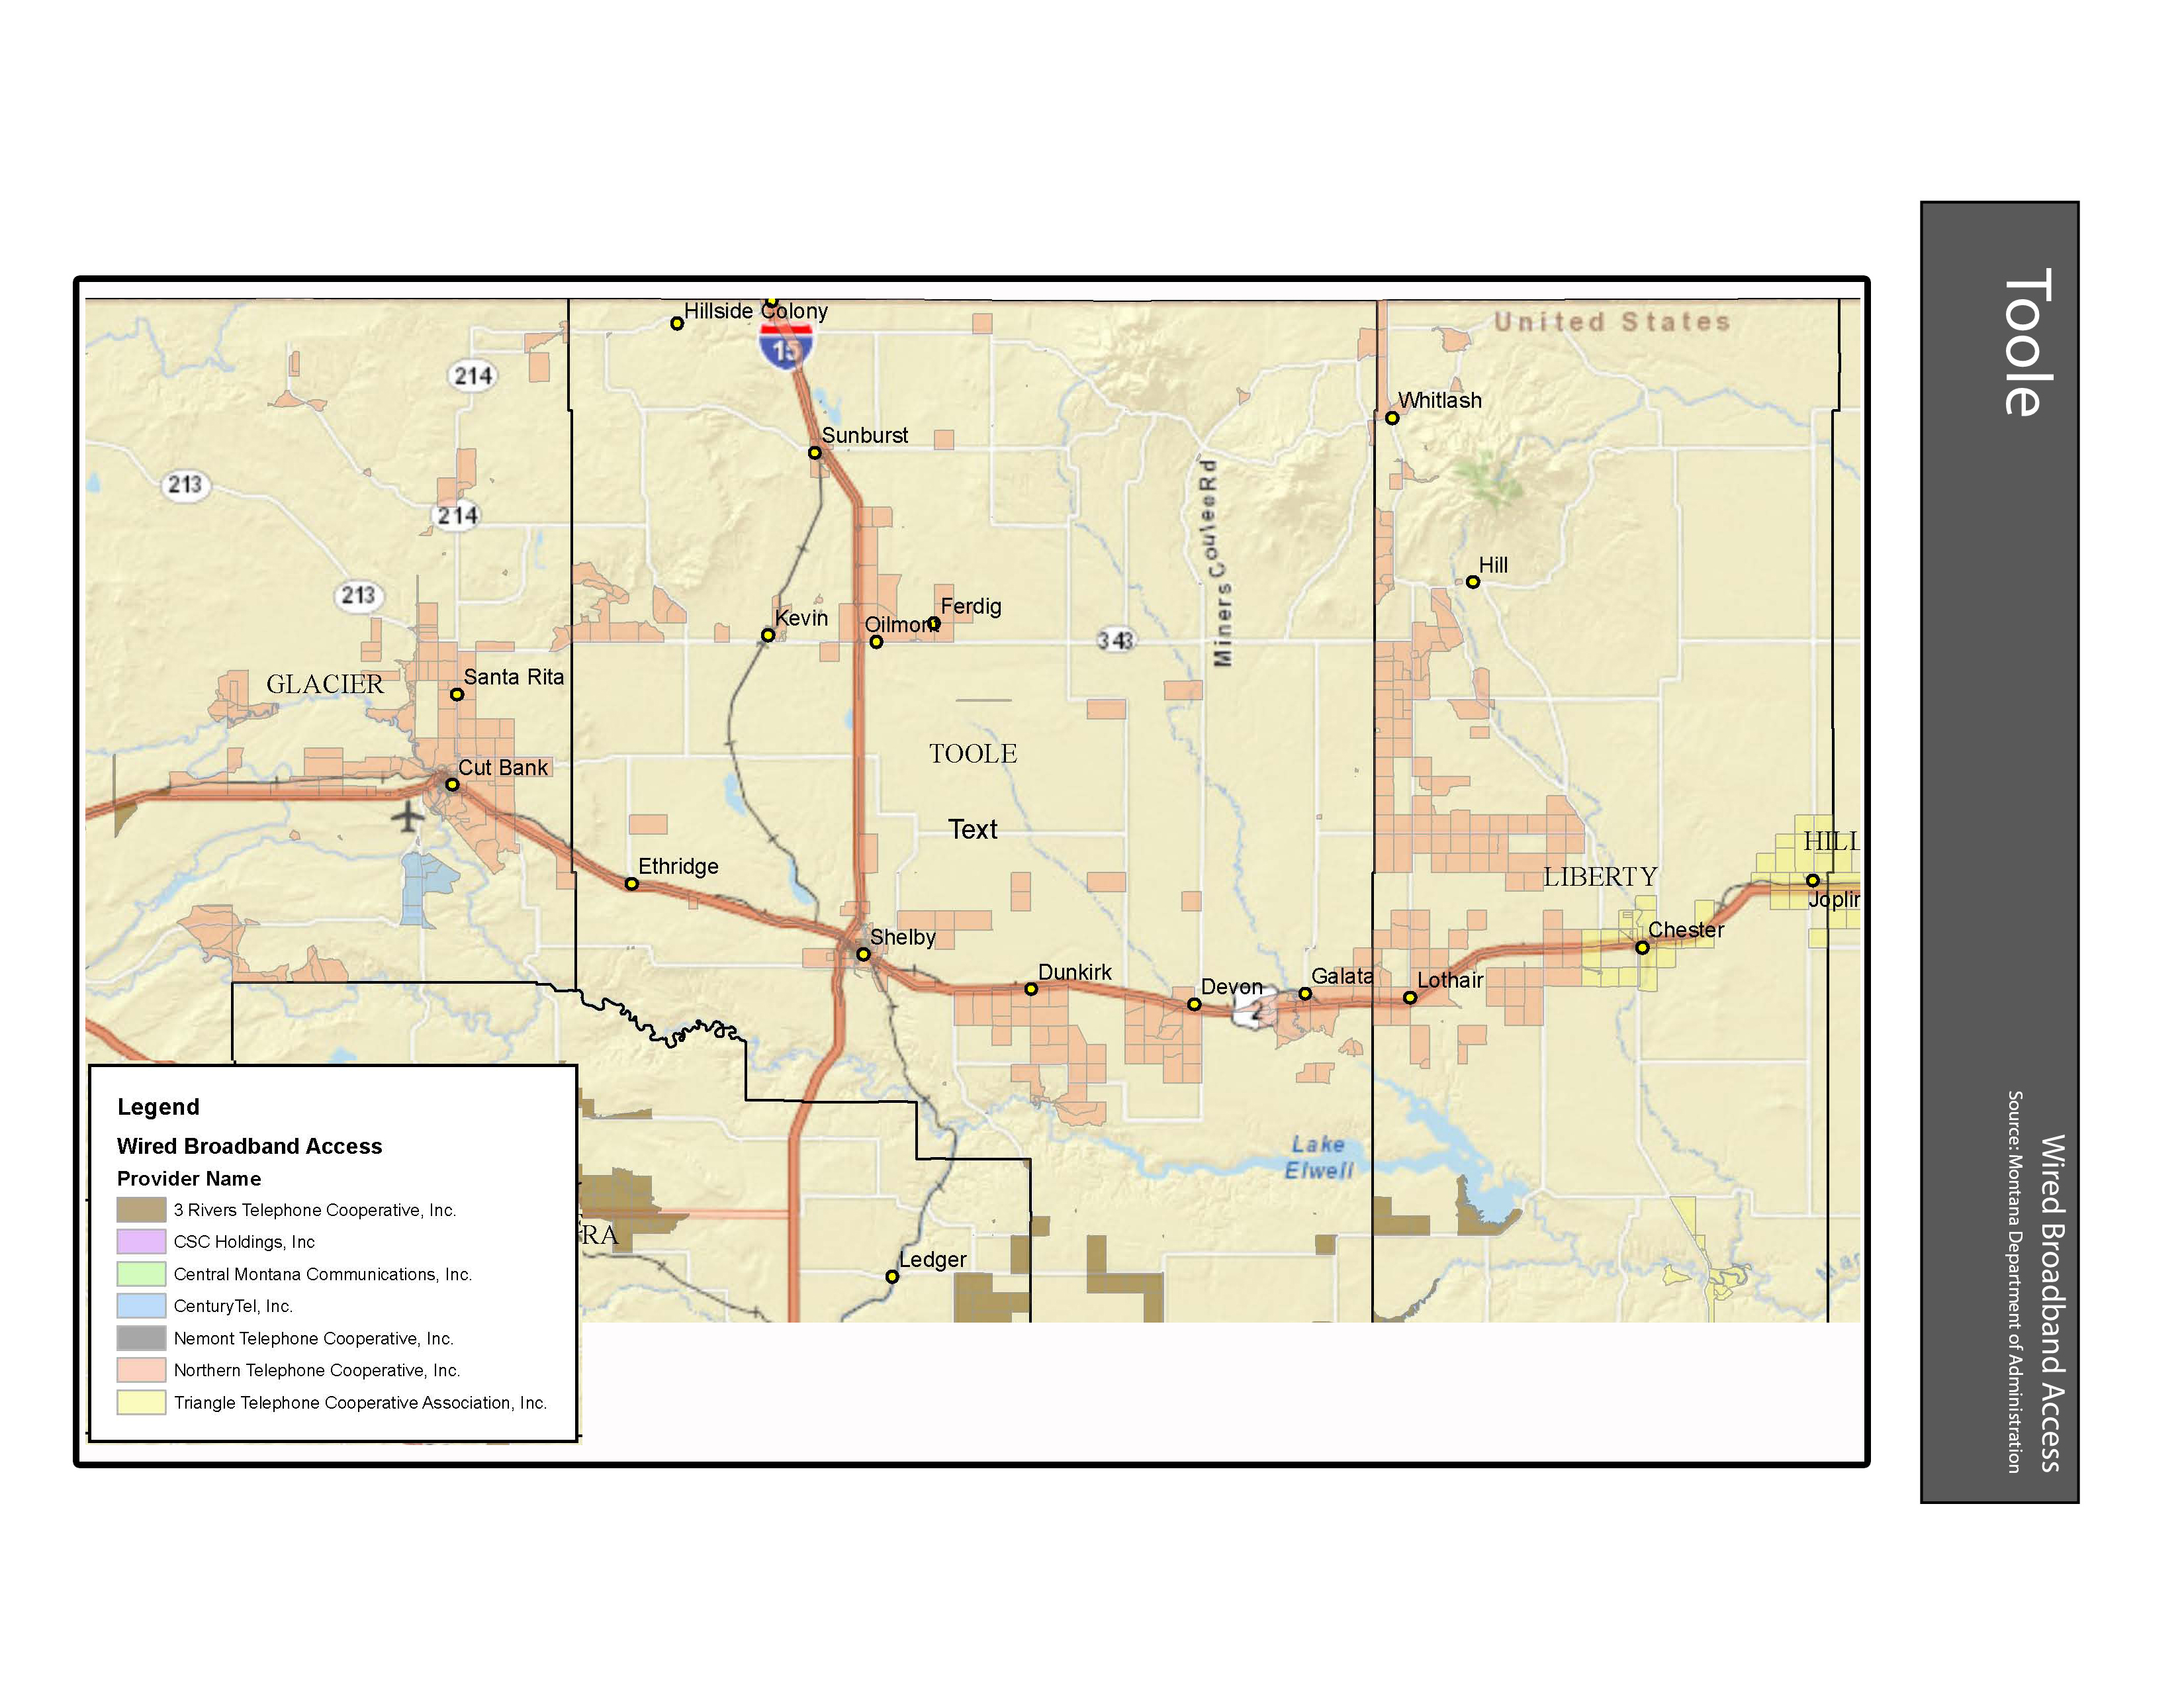 Wired Broadband Access Toole County